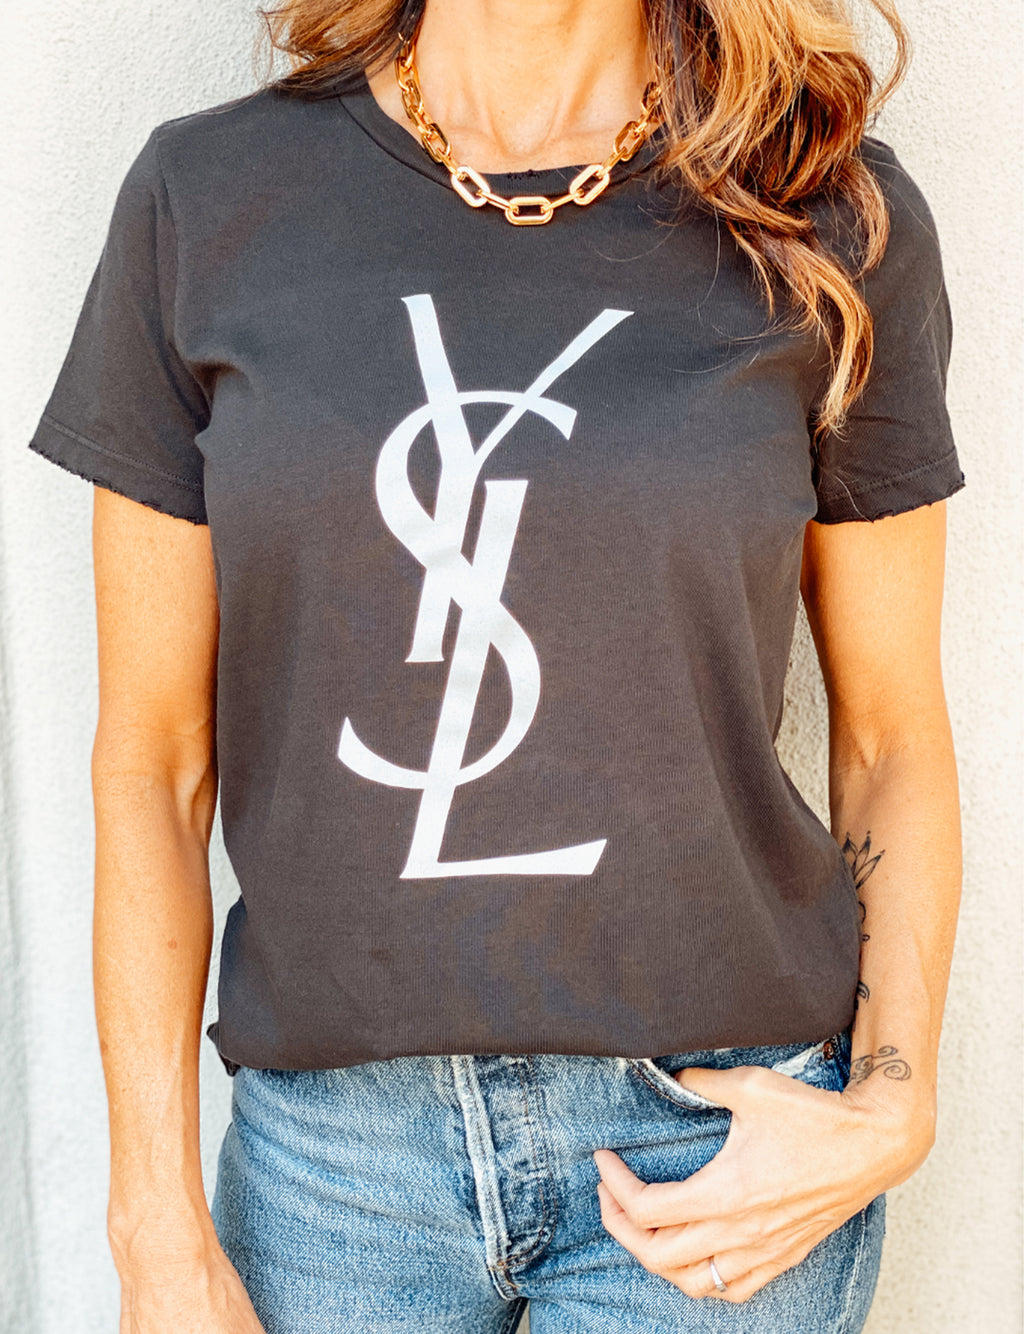 YMB YSL Unisex Tee in Black